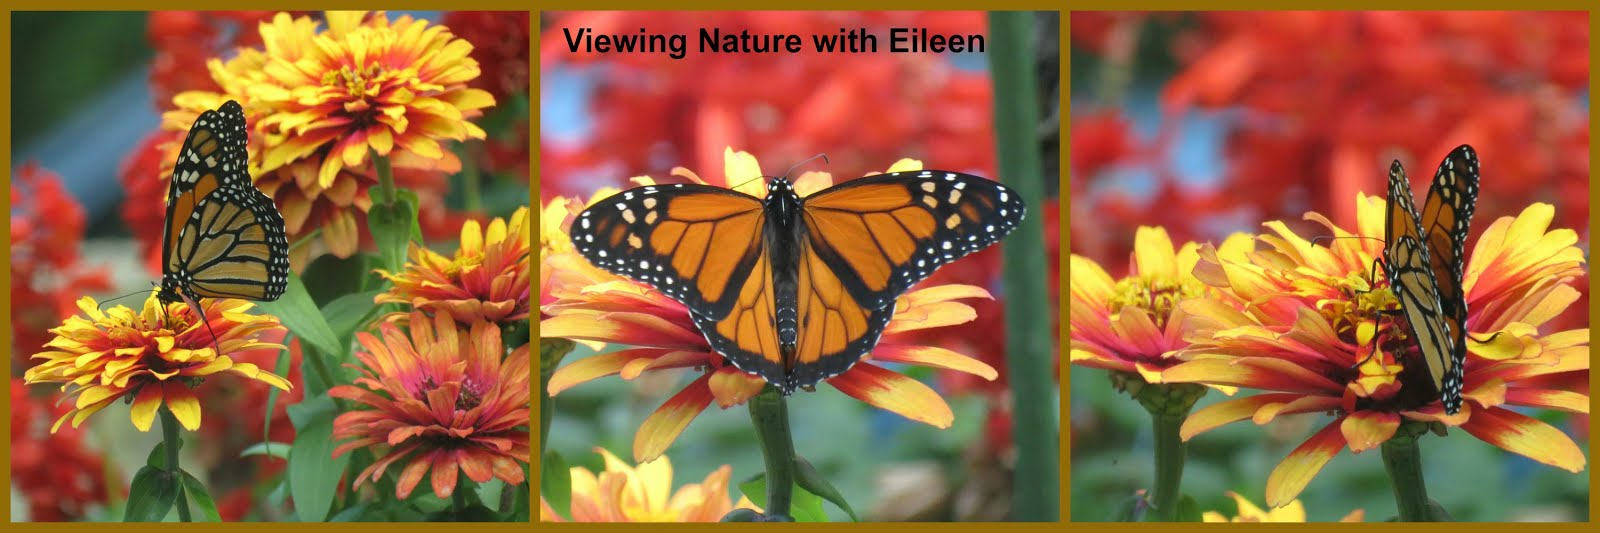 Viewing nature with Eileen